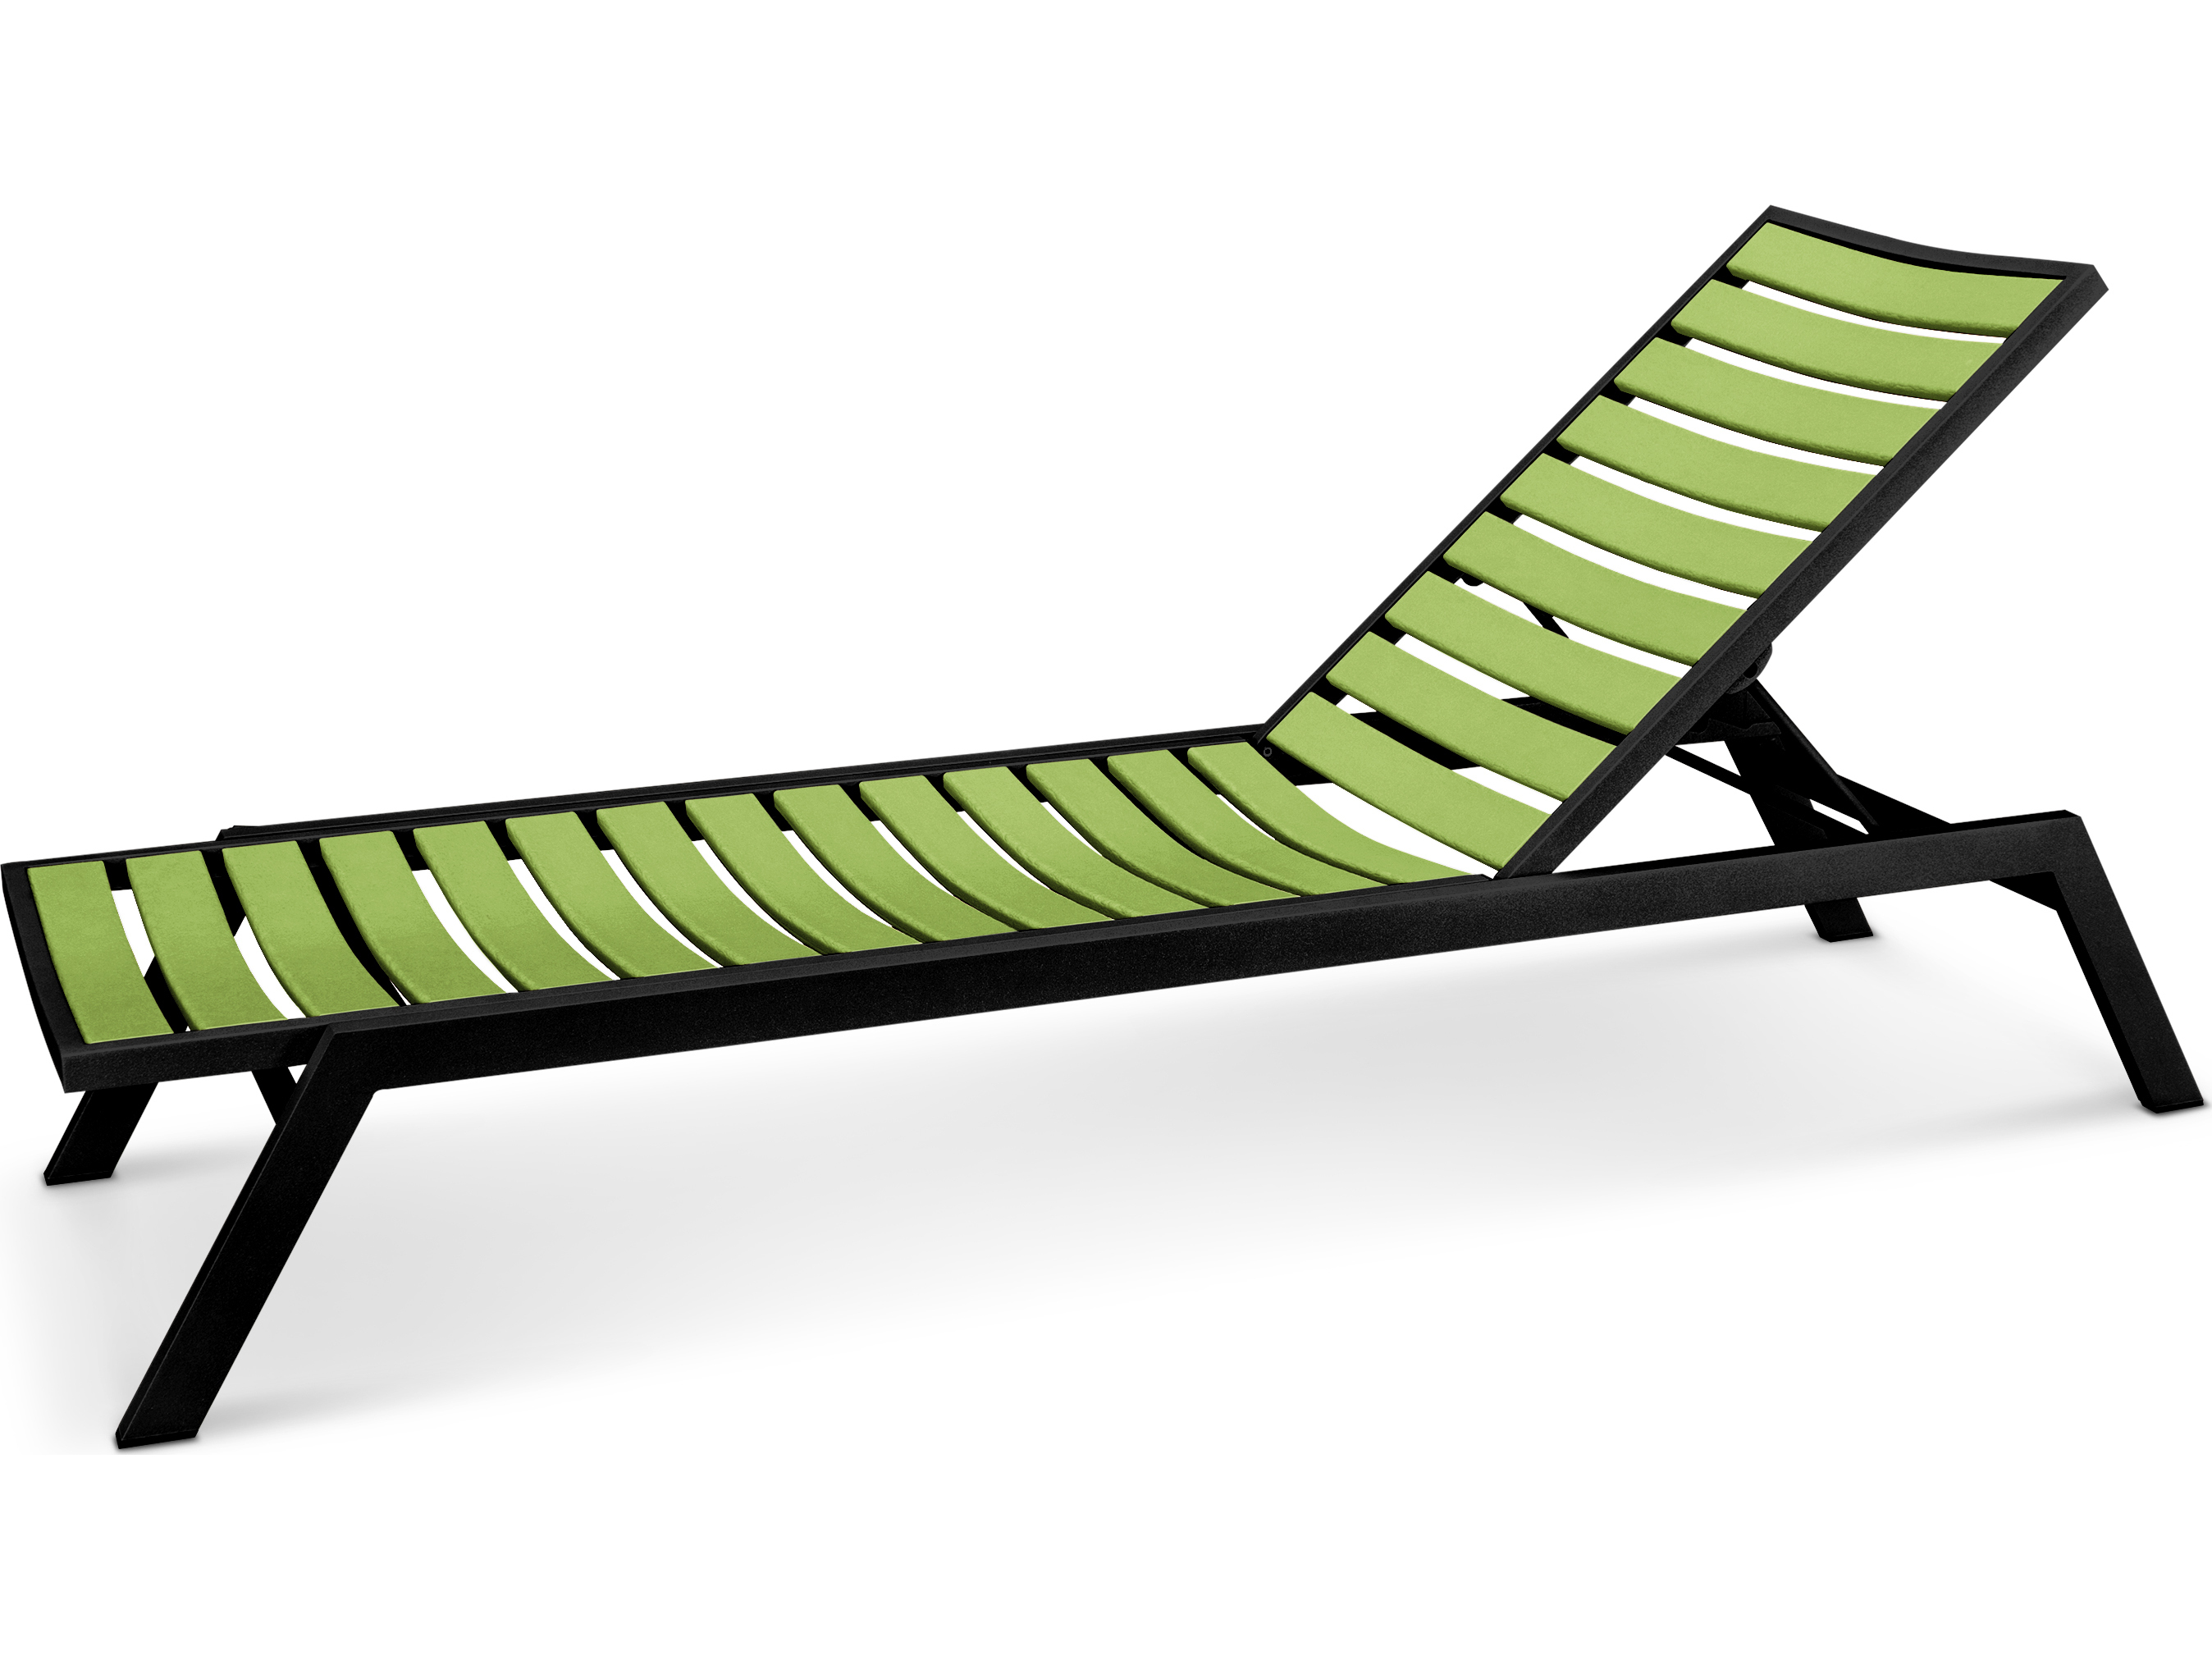 polywood euro recycled plastic chaise lounge ac1. Black Bedroom Furniture Sets. Home Design Ideas